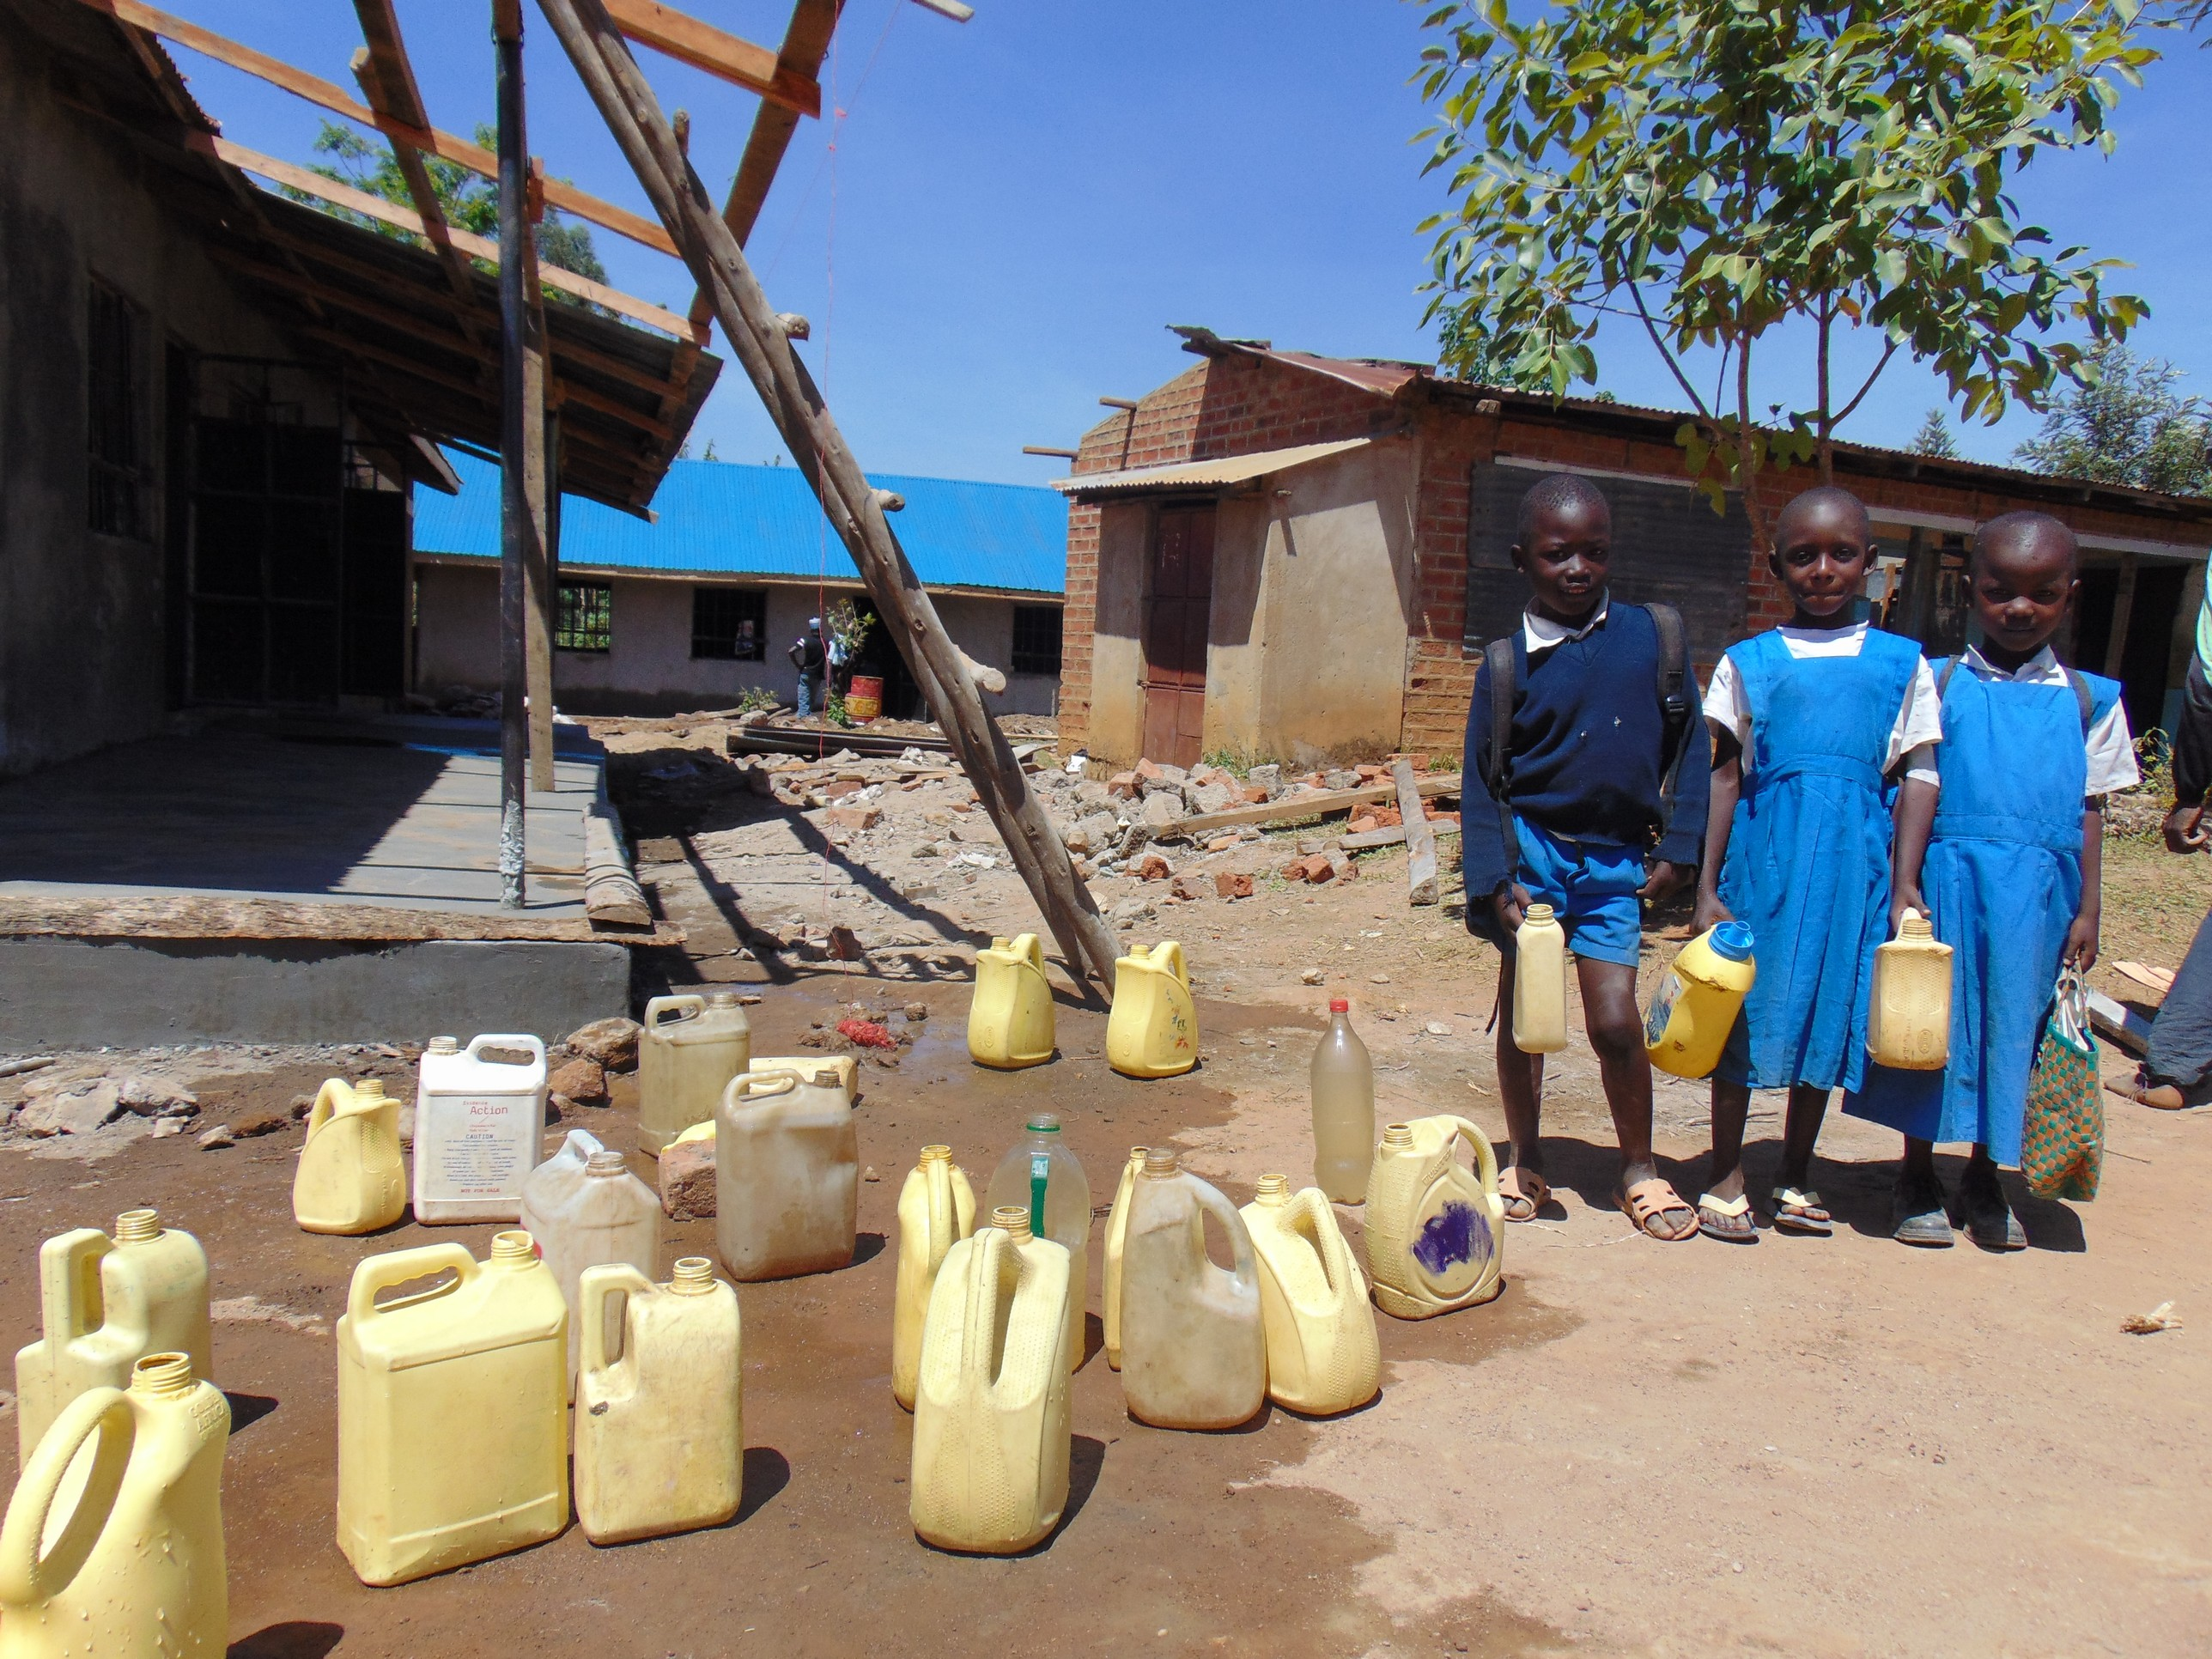 The Water Project : 20-kenya20102-pupils-with-water-containers-at-central-dropoff-point